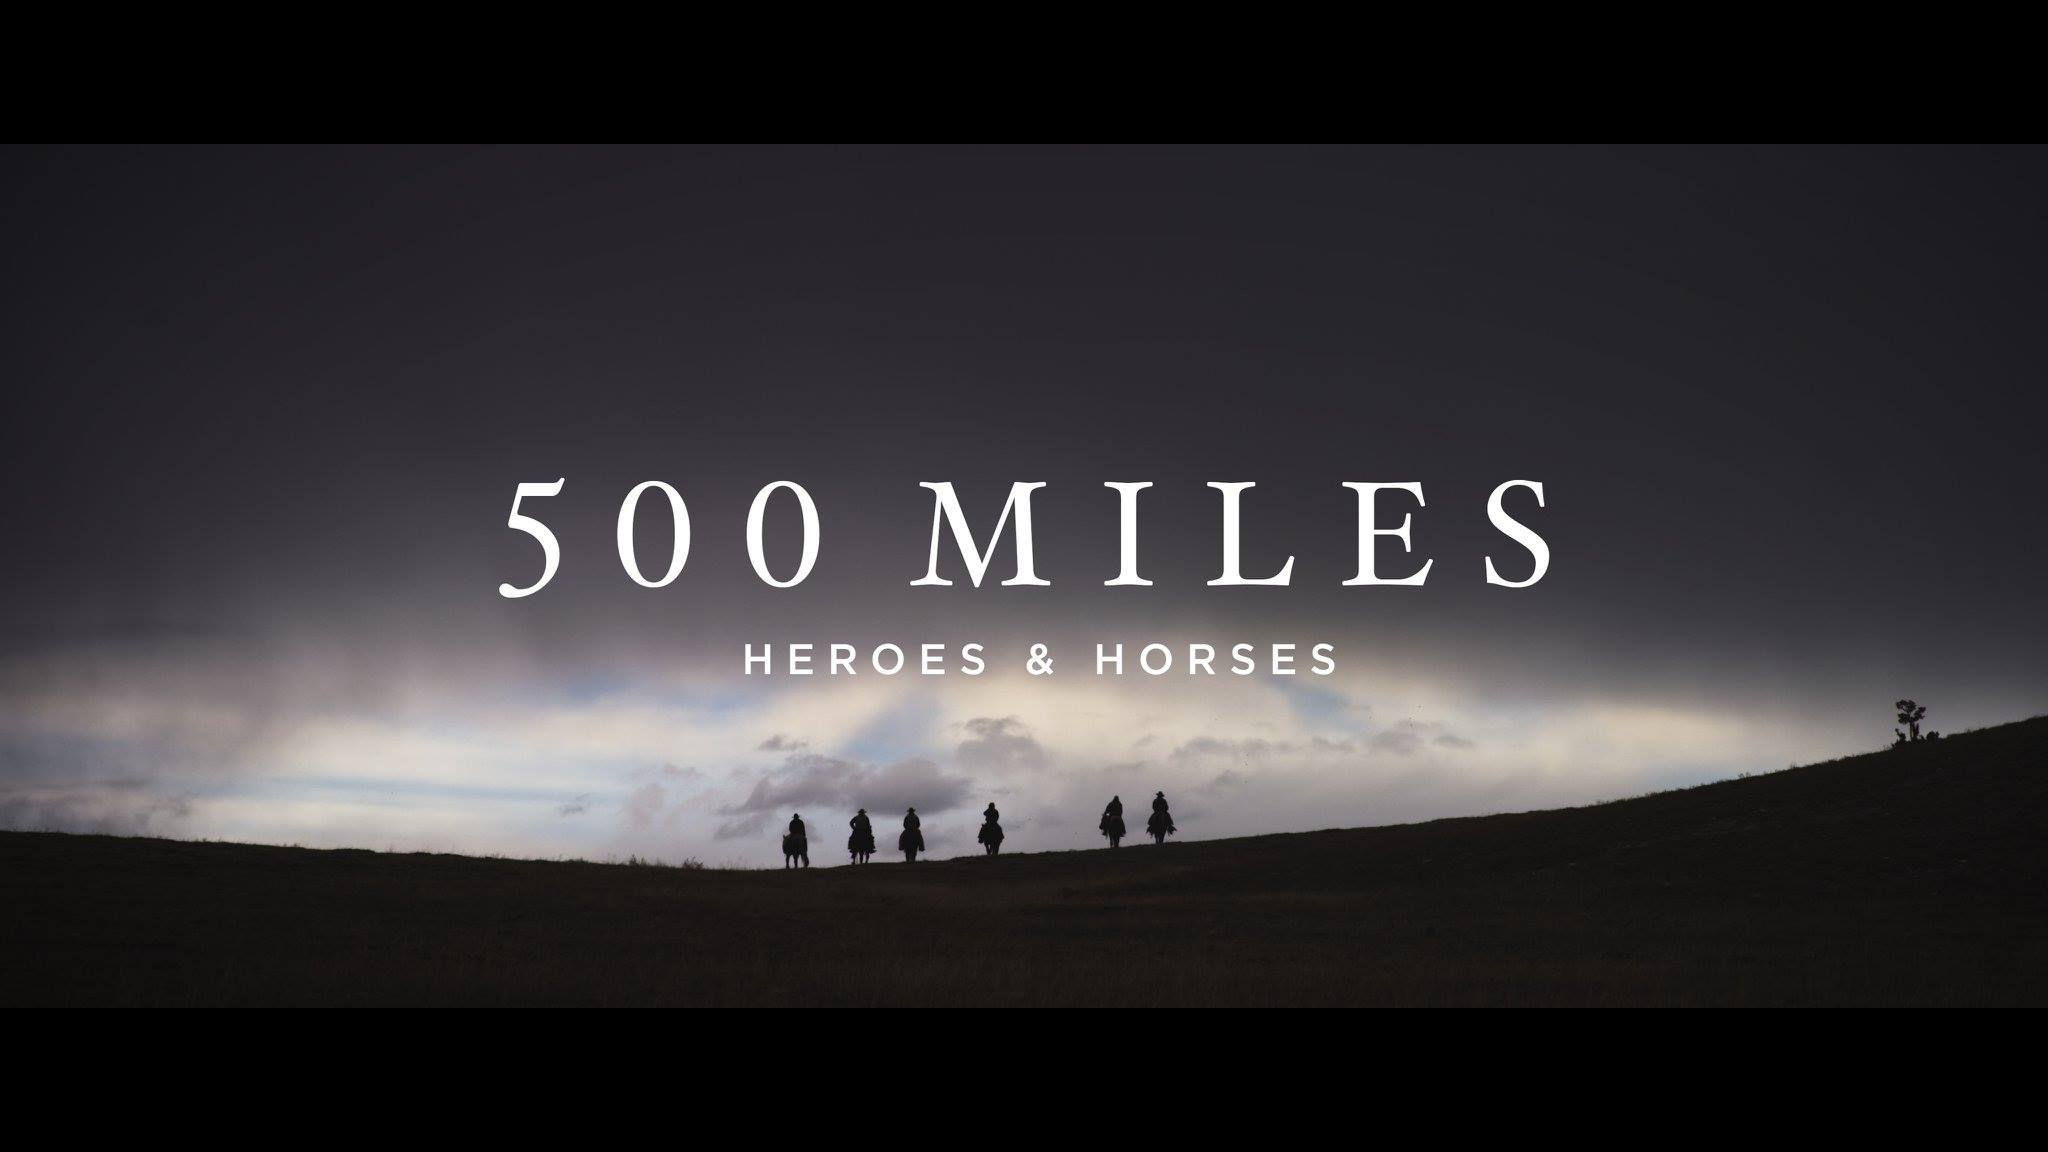 We have so many exciting things to share with all of you as we lead up to the release of 500 Miles on November 10th. Our hope with all of this? That it starts a conversation. A real conversation about why organizations like Heroes and Horses need to exist, and why all of us – whether you are a veteran or not – have a responsibility to question our relationship with challenge and purpose.